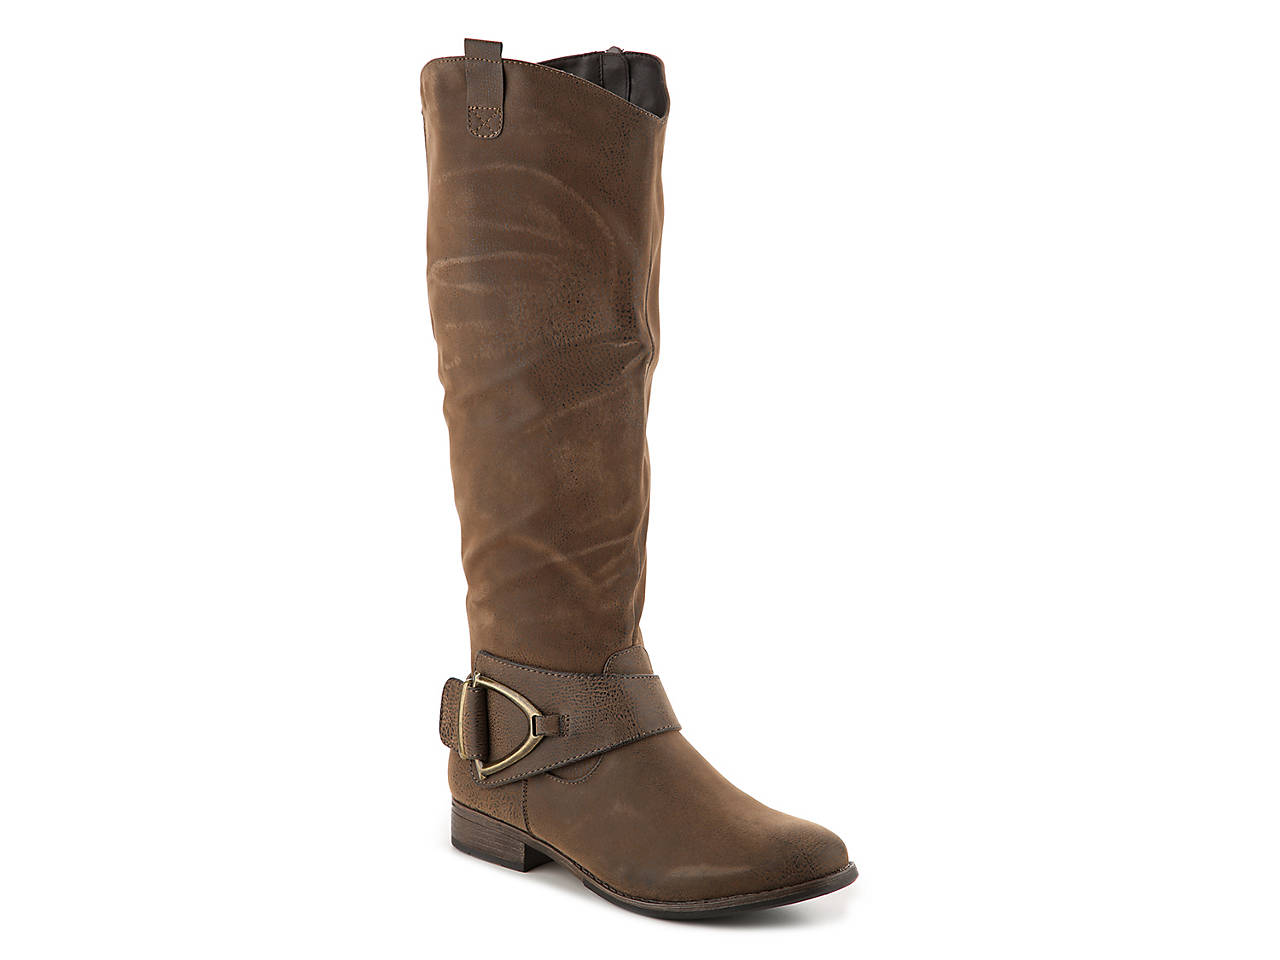 ee1e3daf8279 Crown Vintage Bella Wide Calf Riding Boot Women s Shoes